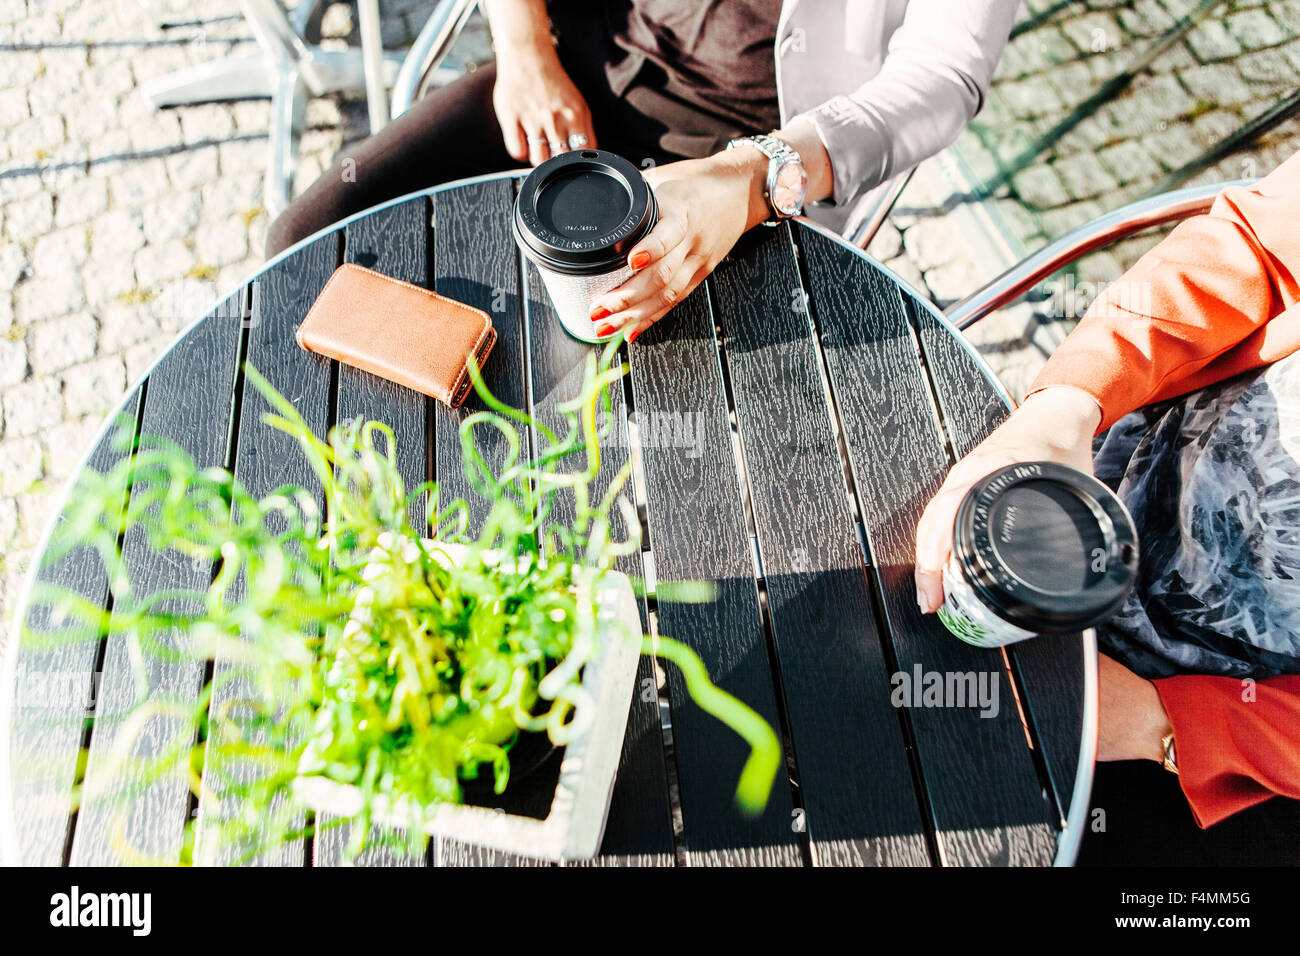 Cropped image of businesswomen holding disposable cups at sidewalk cafe table - Stock Image